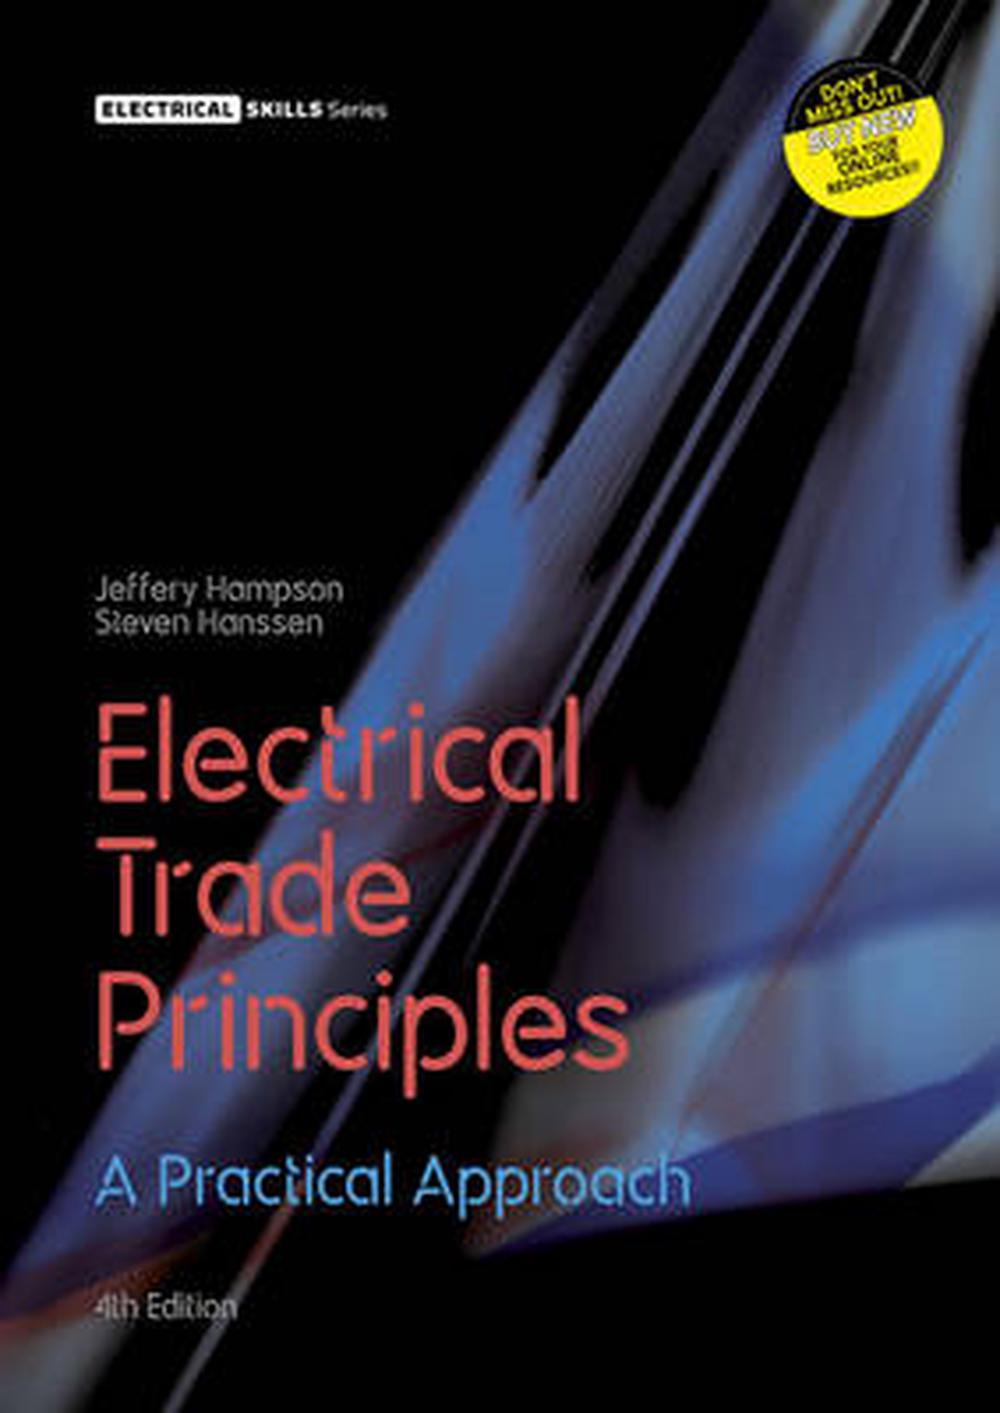 Electrical Trade Principles: A Practical Approach With Student Resource Access 24 Months, 4th Edition